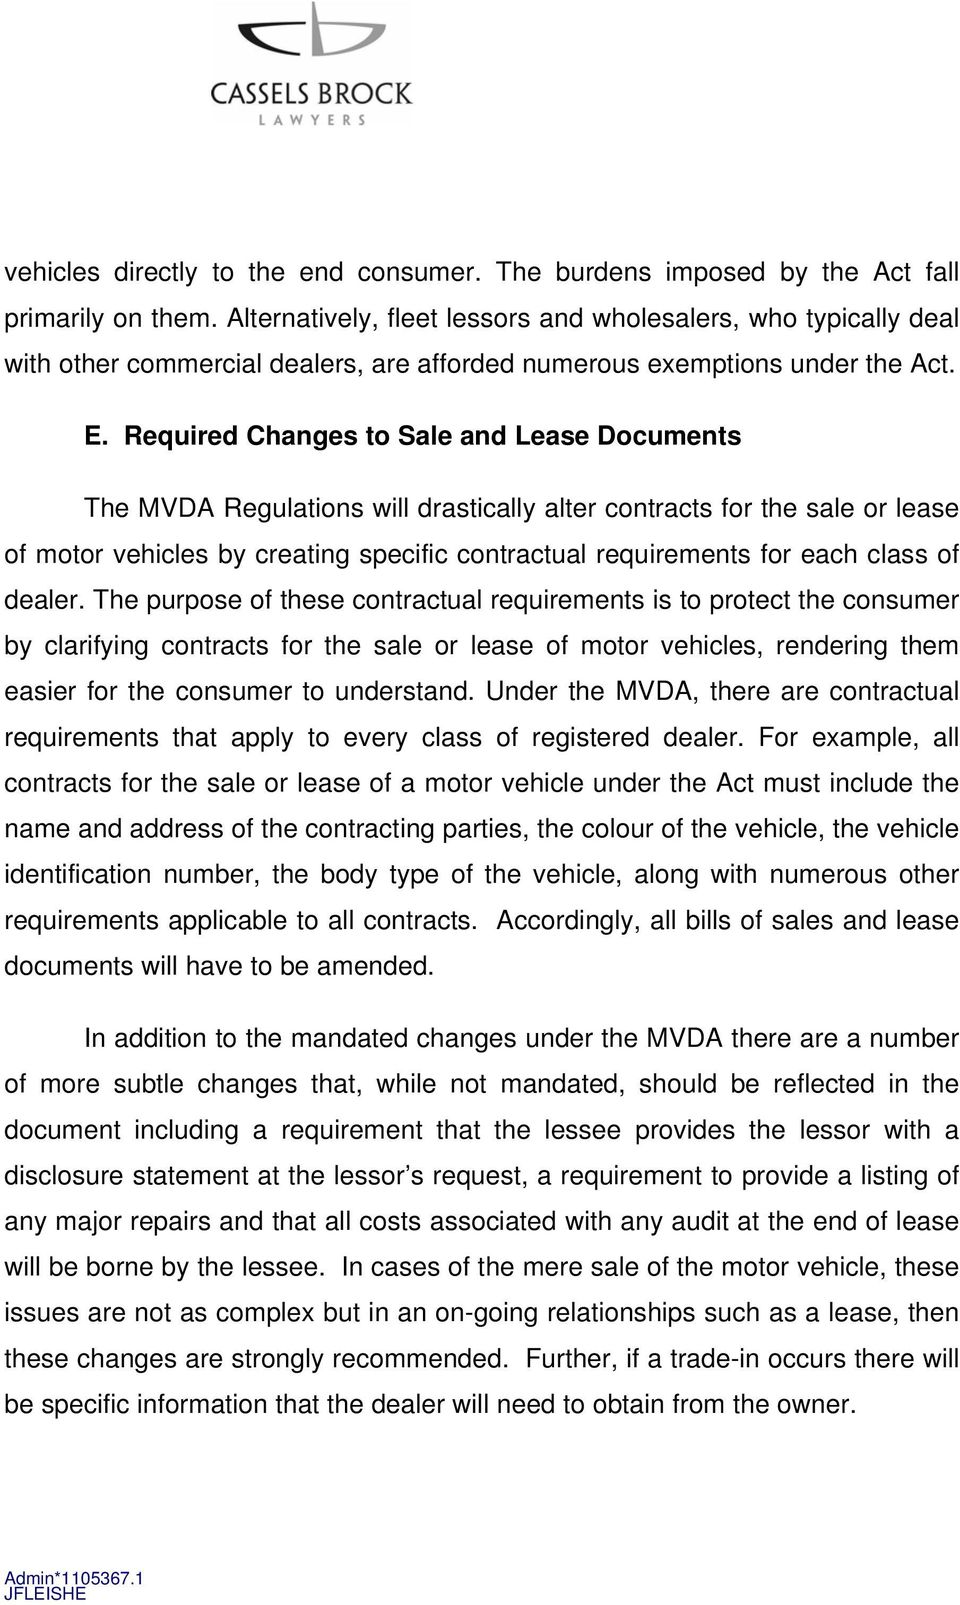 Required Changes to Sale and Lease Documents The MVDA Regulations will drastically alter contracts for the sale or lease of motor vehicles by creating specific contractual requirements for each class